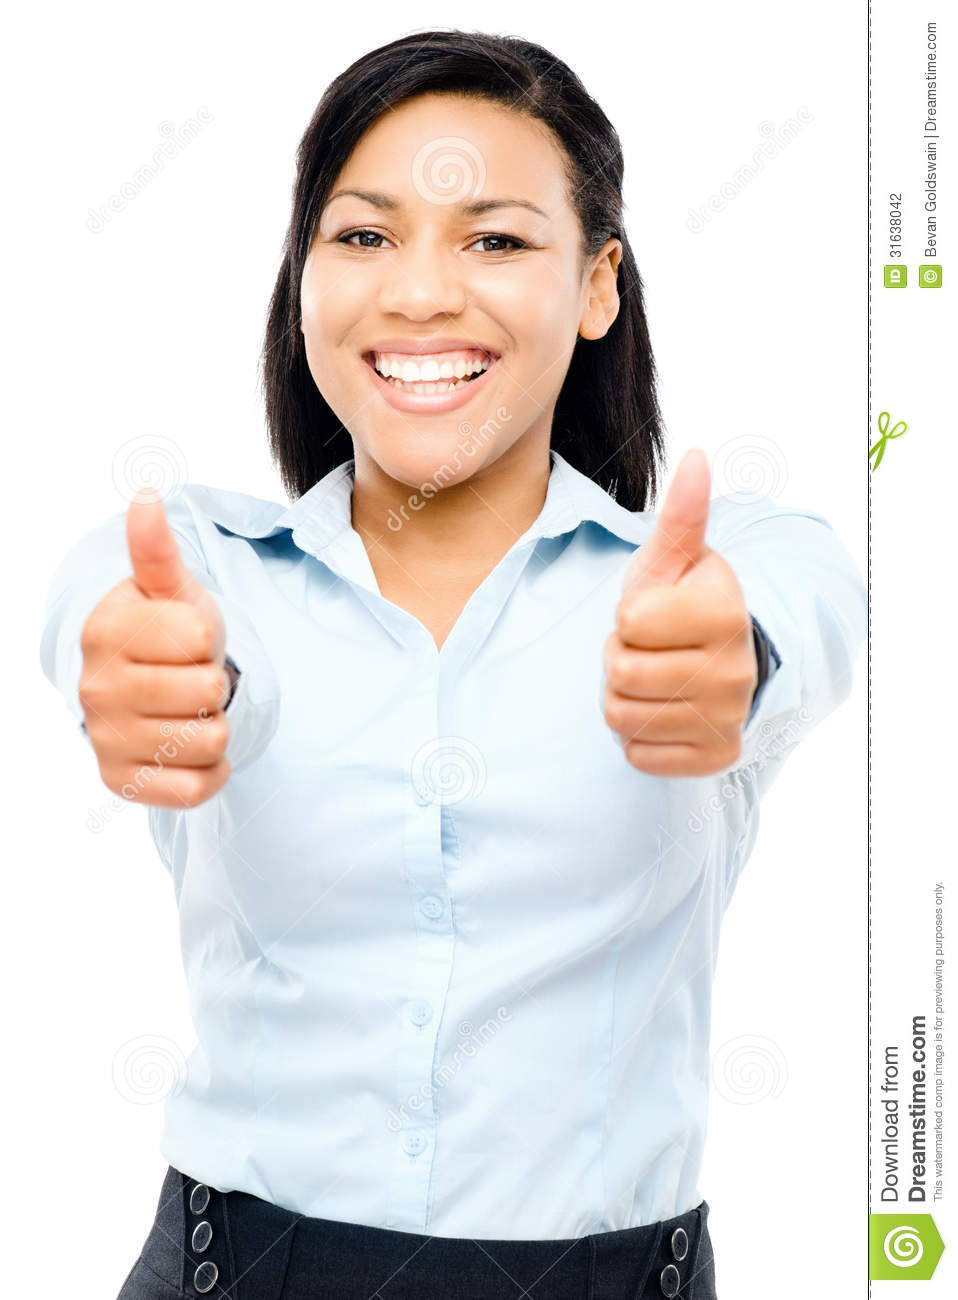 happy-hispanic-business-woman-thumbs-up-isolated-white-backgr-showing-31638042.jpg